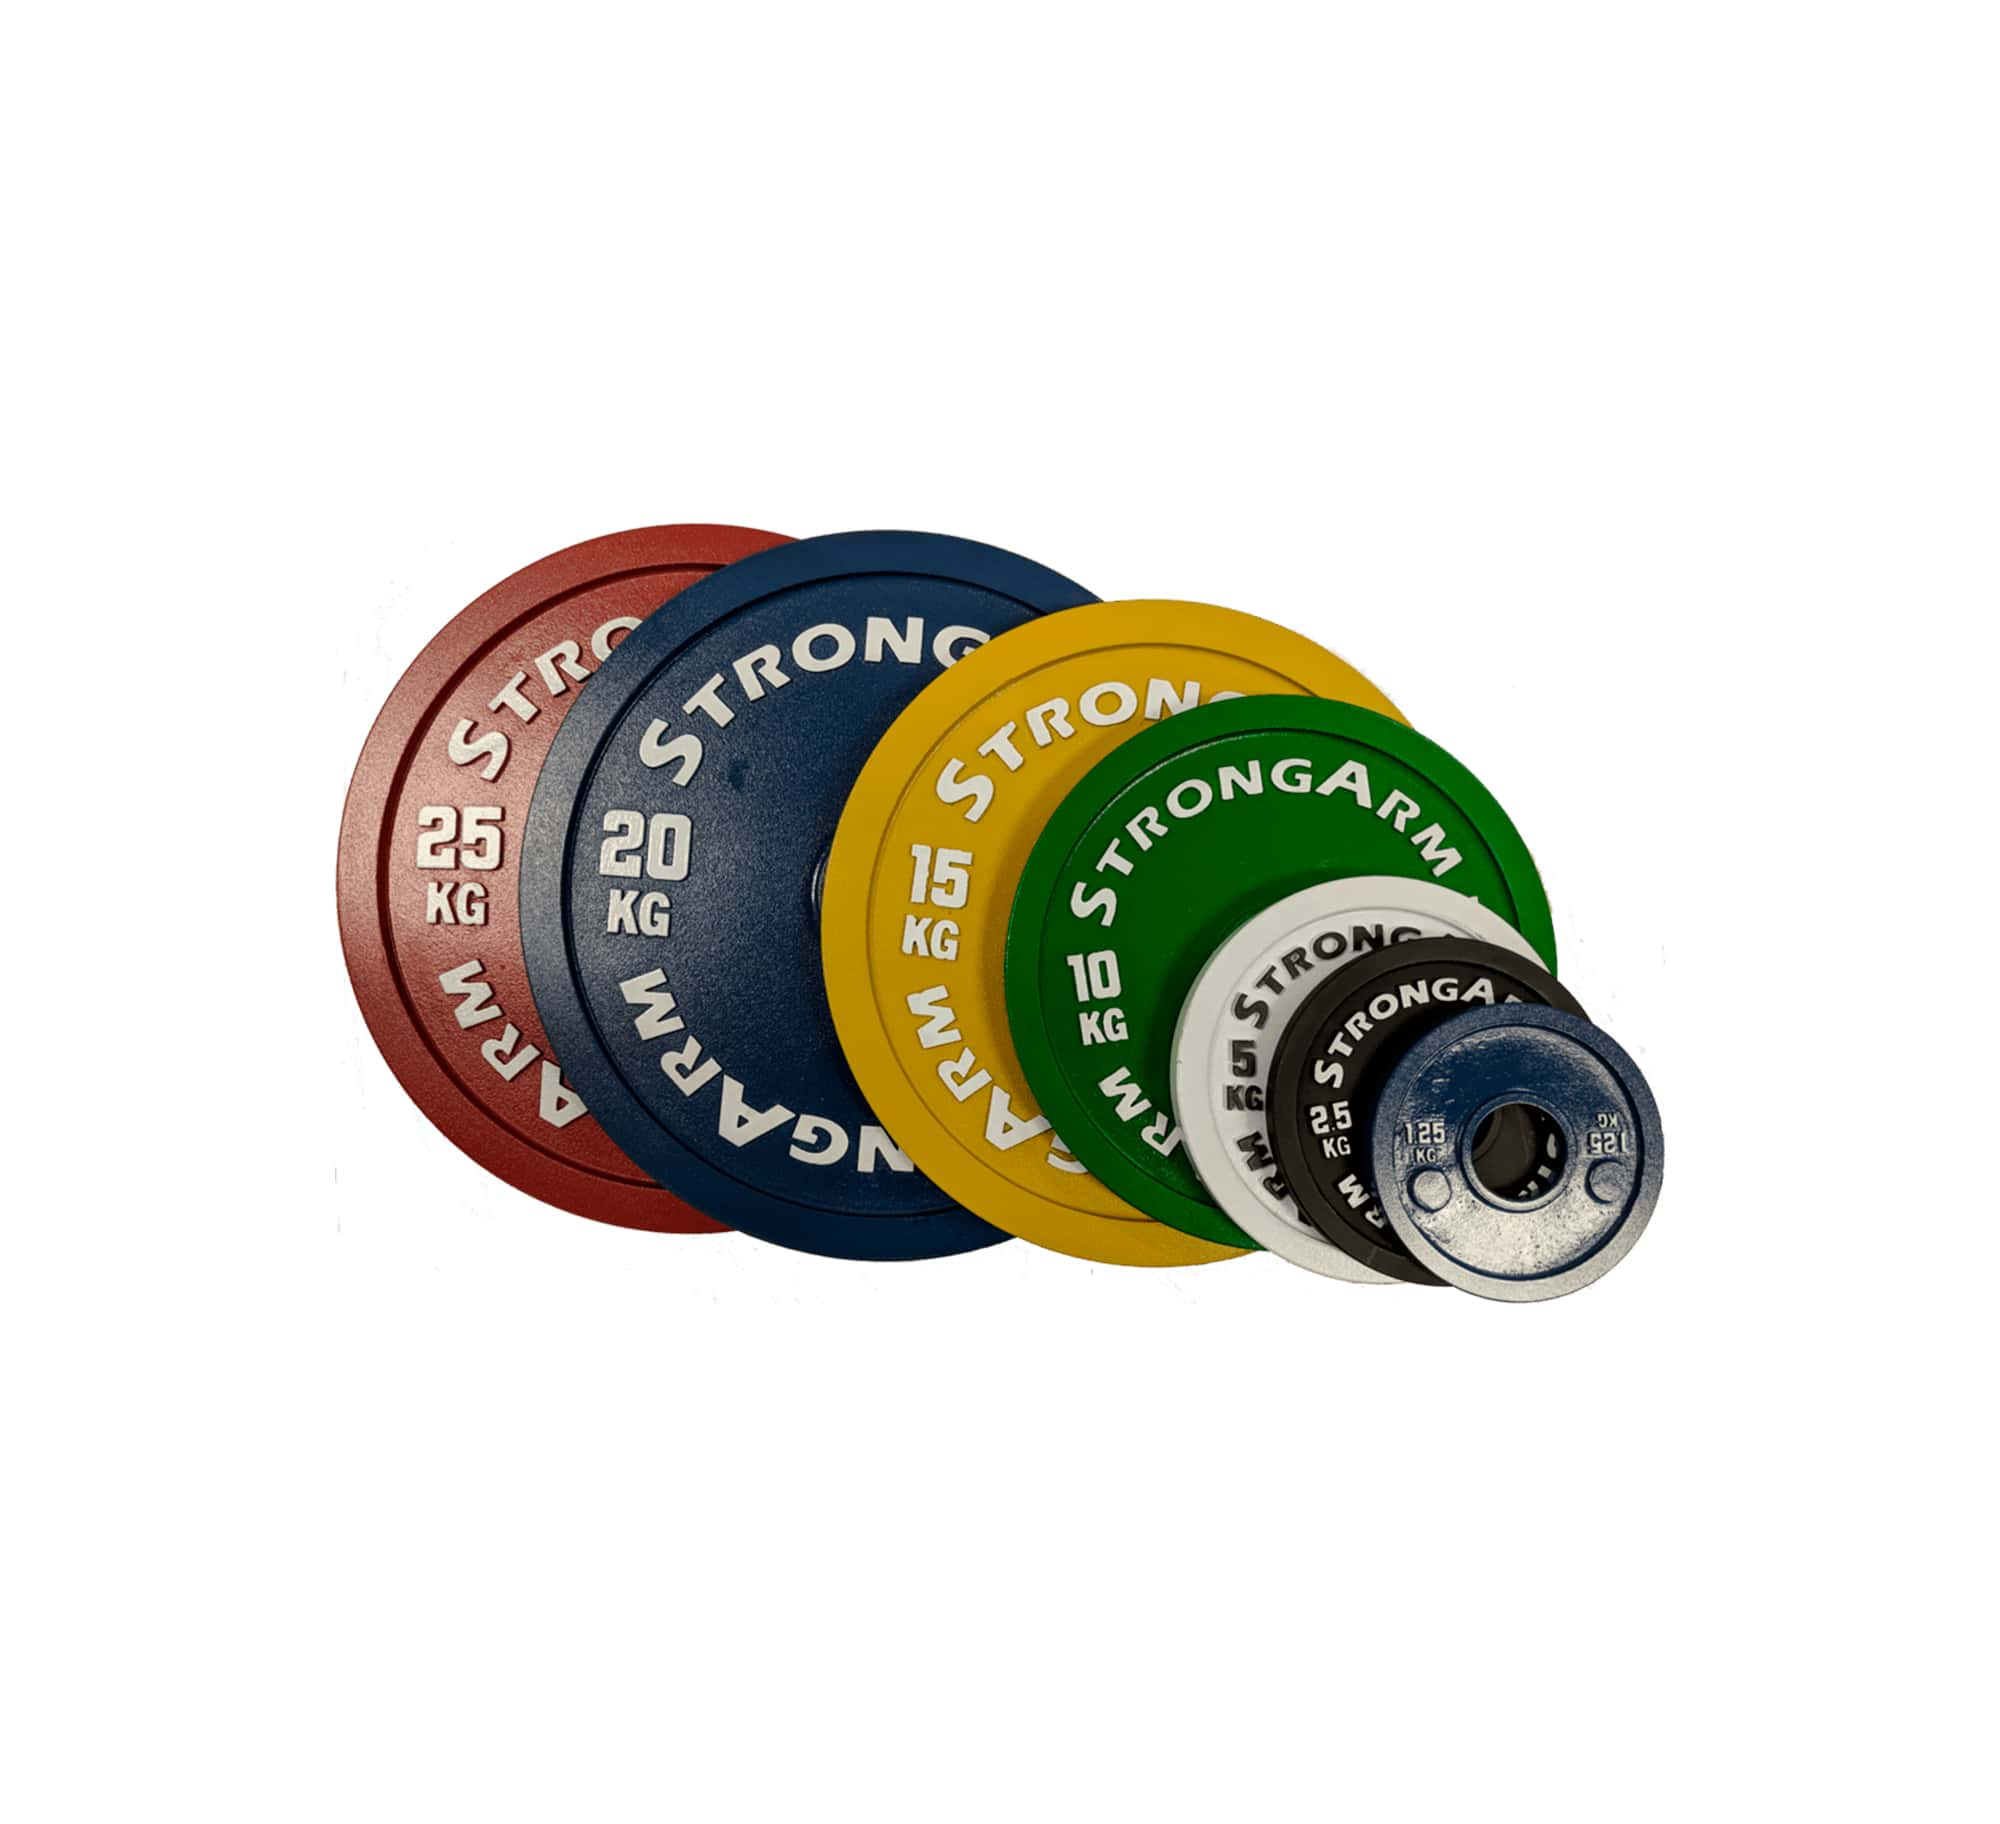 Calibrated Powerlifting Plate Sets by StrongArm